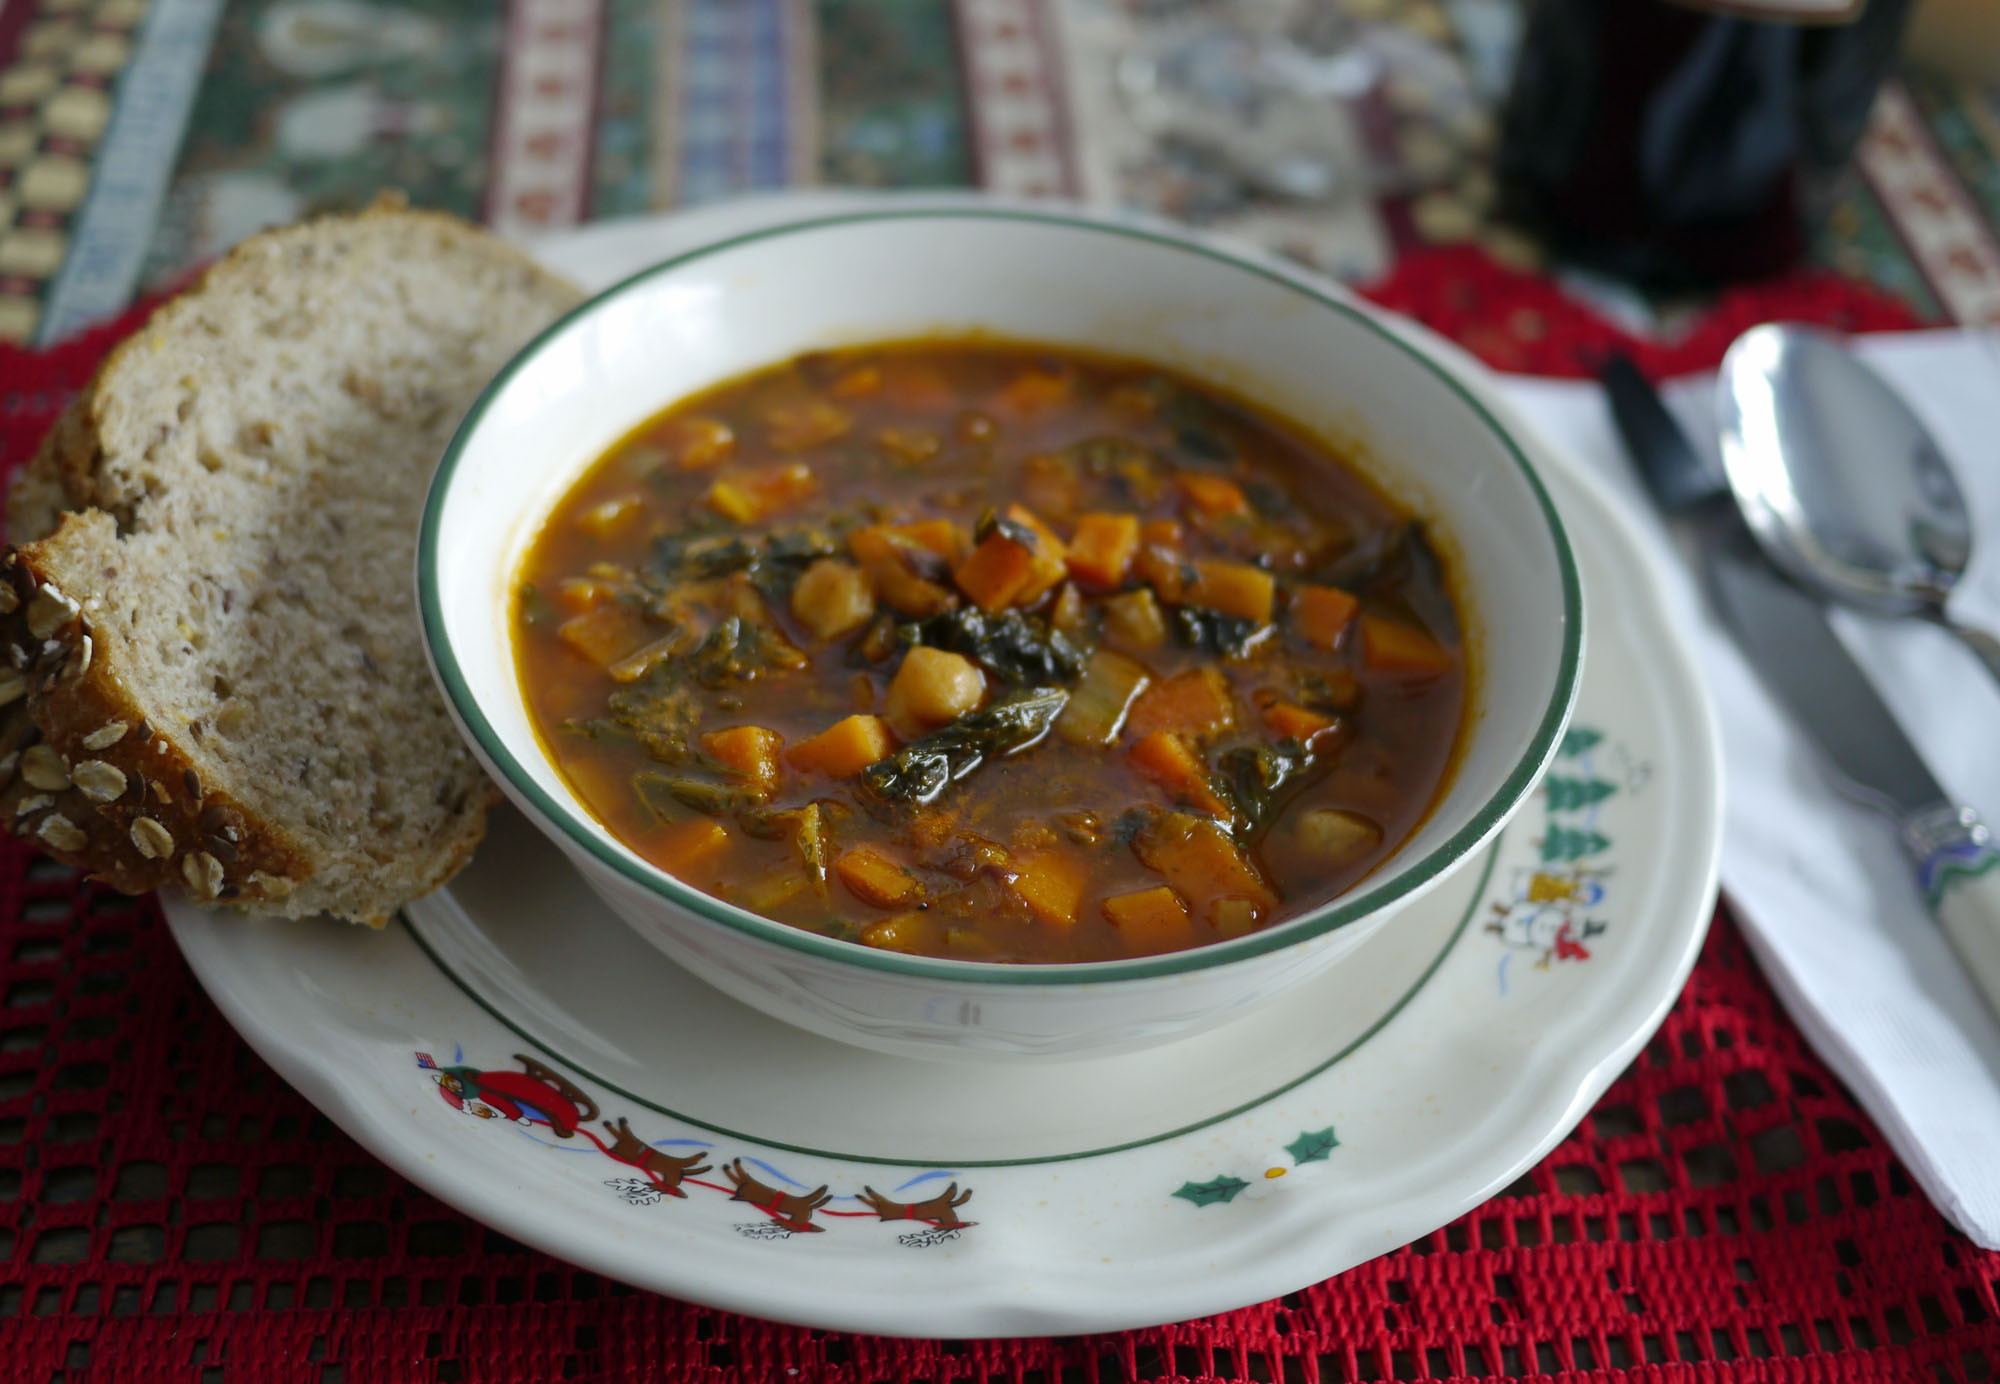 Spicy Chickpea and Leek Soup with Kale